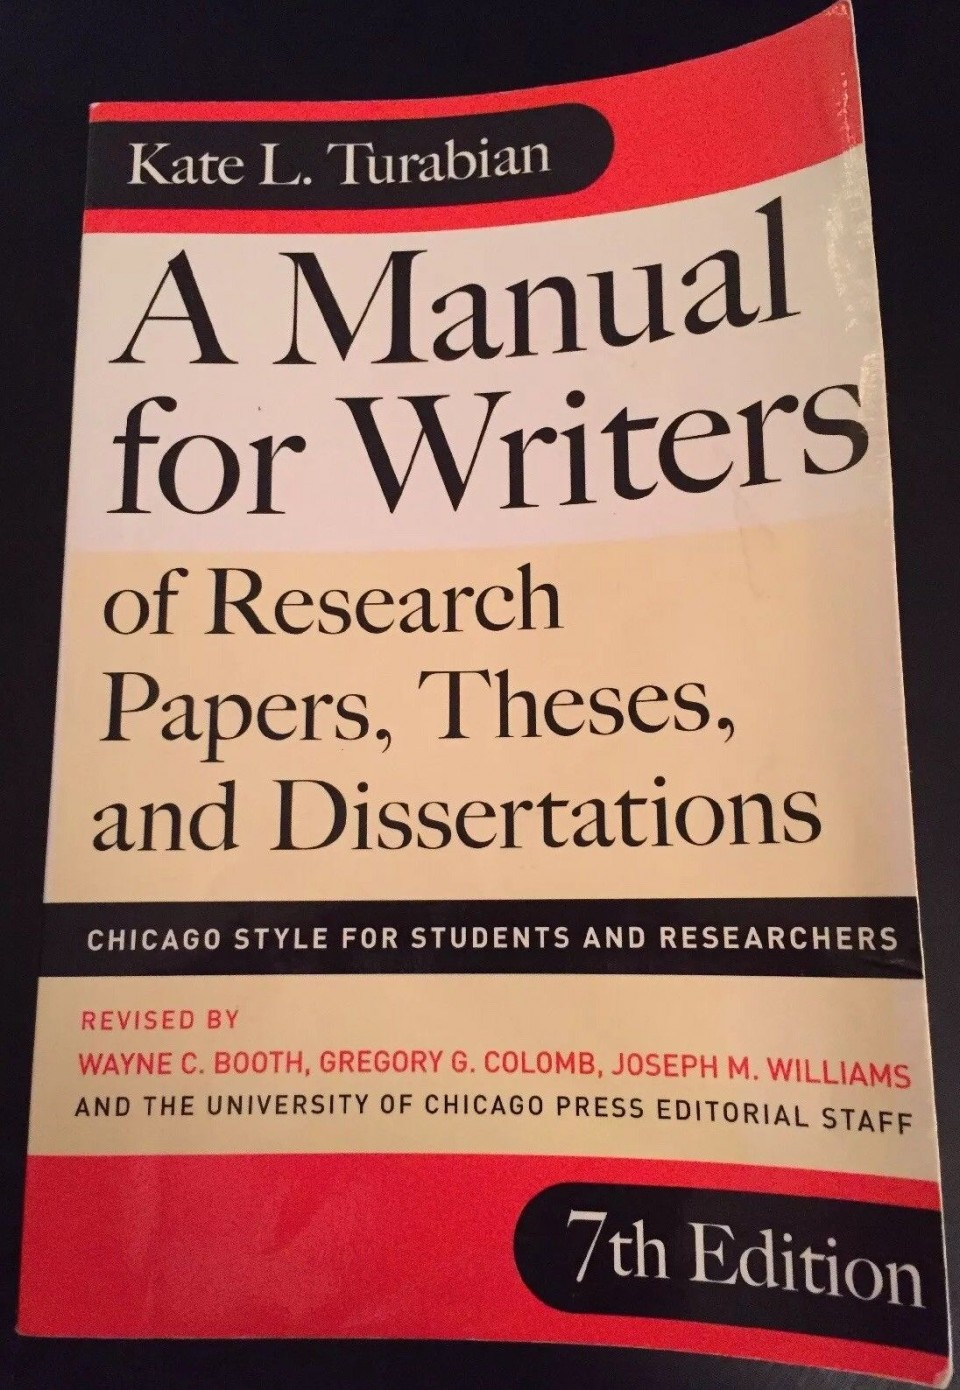 028 Research Paper Manual For Writers Of Papers Theses And Dissertations Turabian S Amazing A Pdf 960